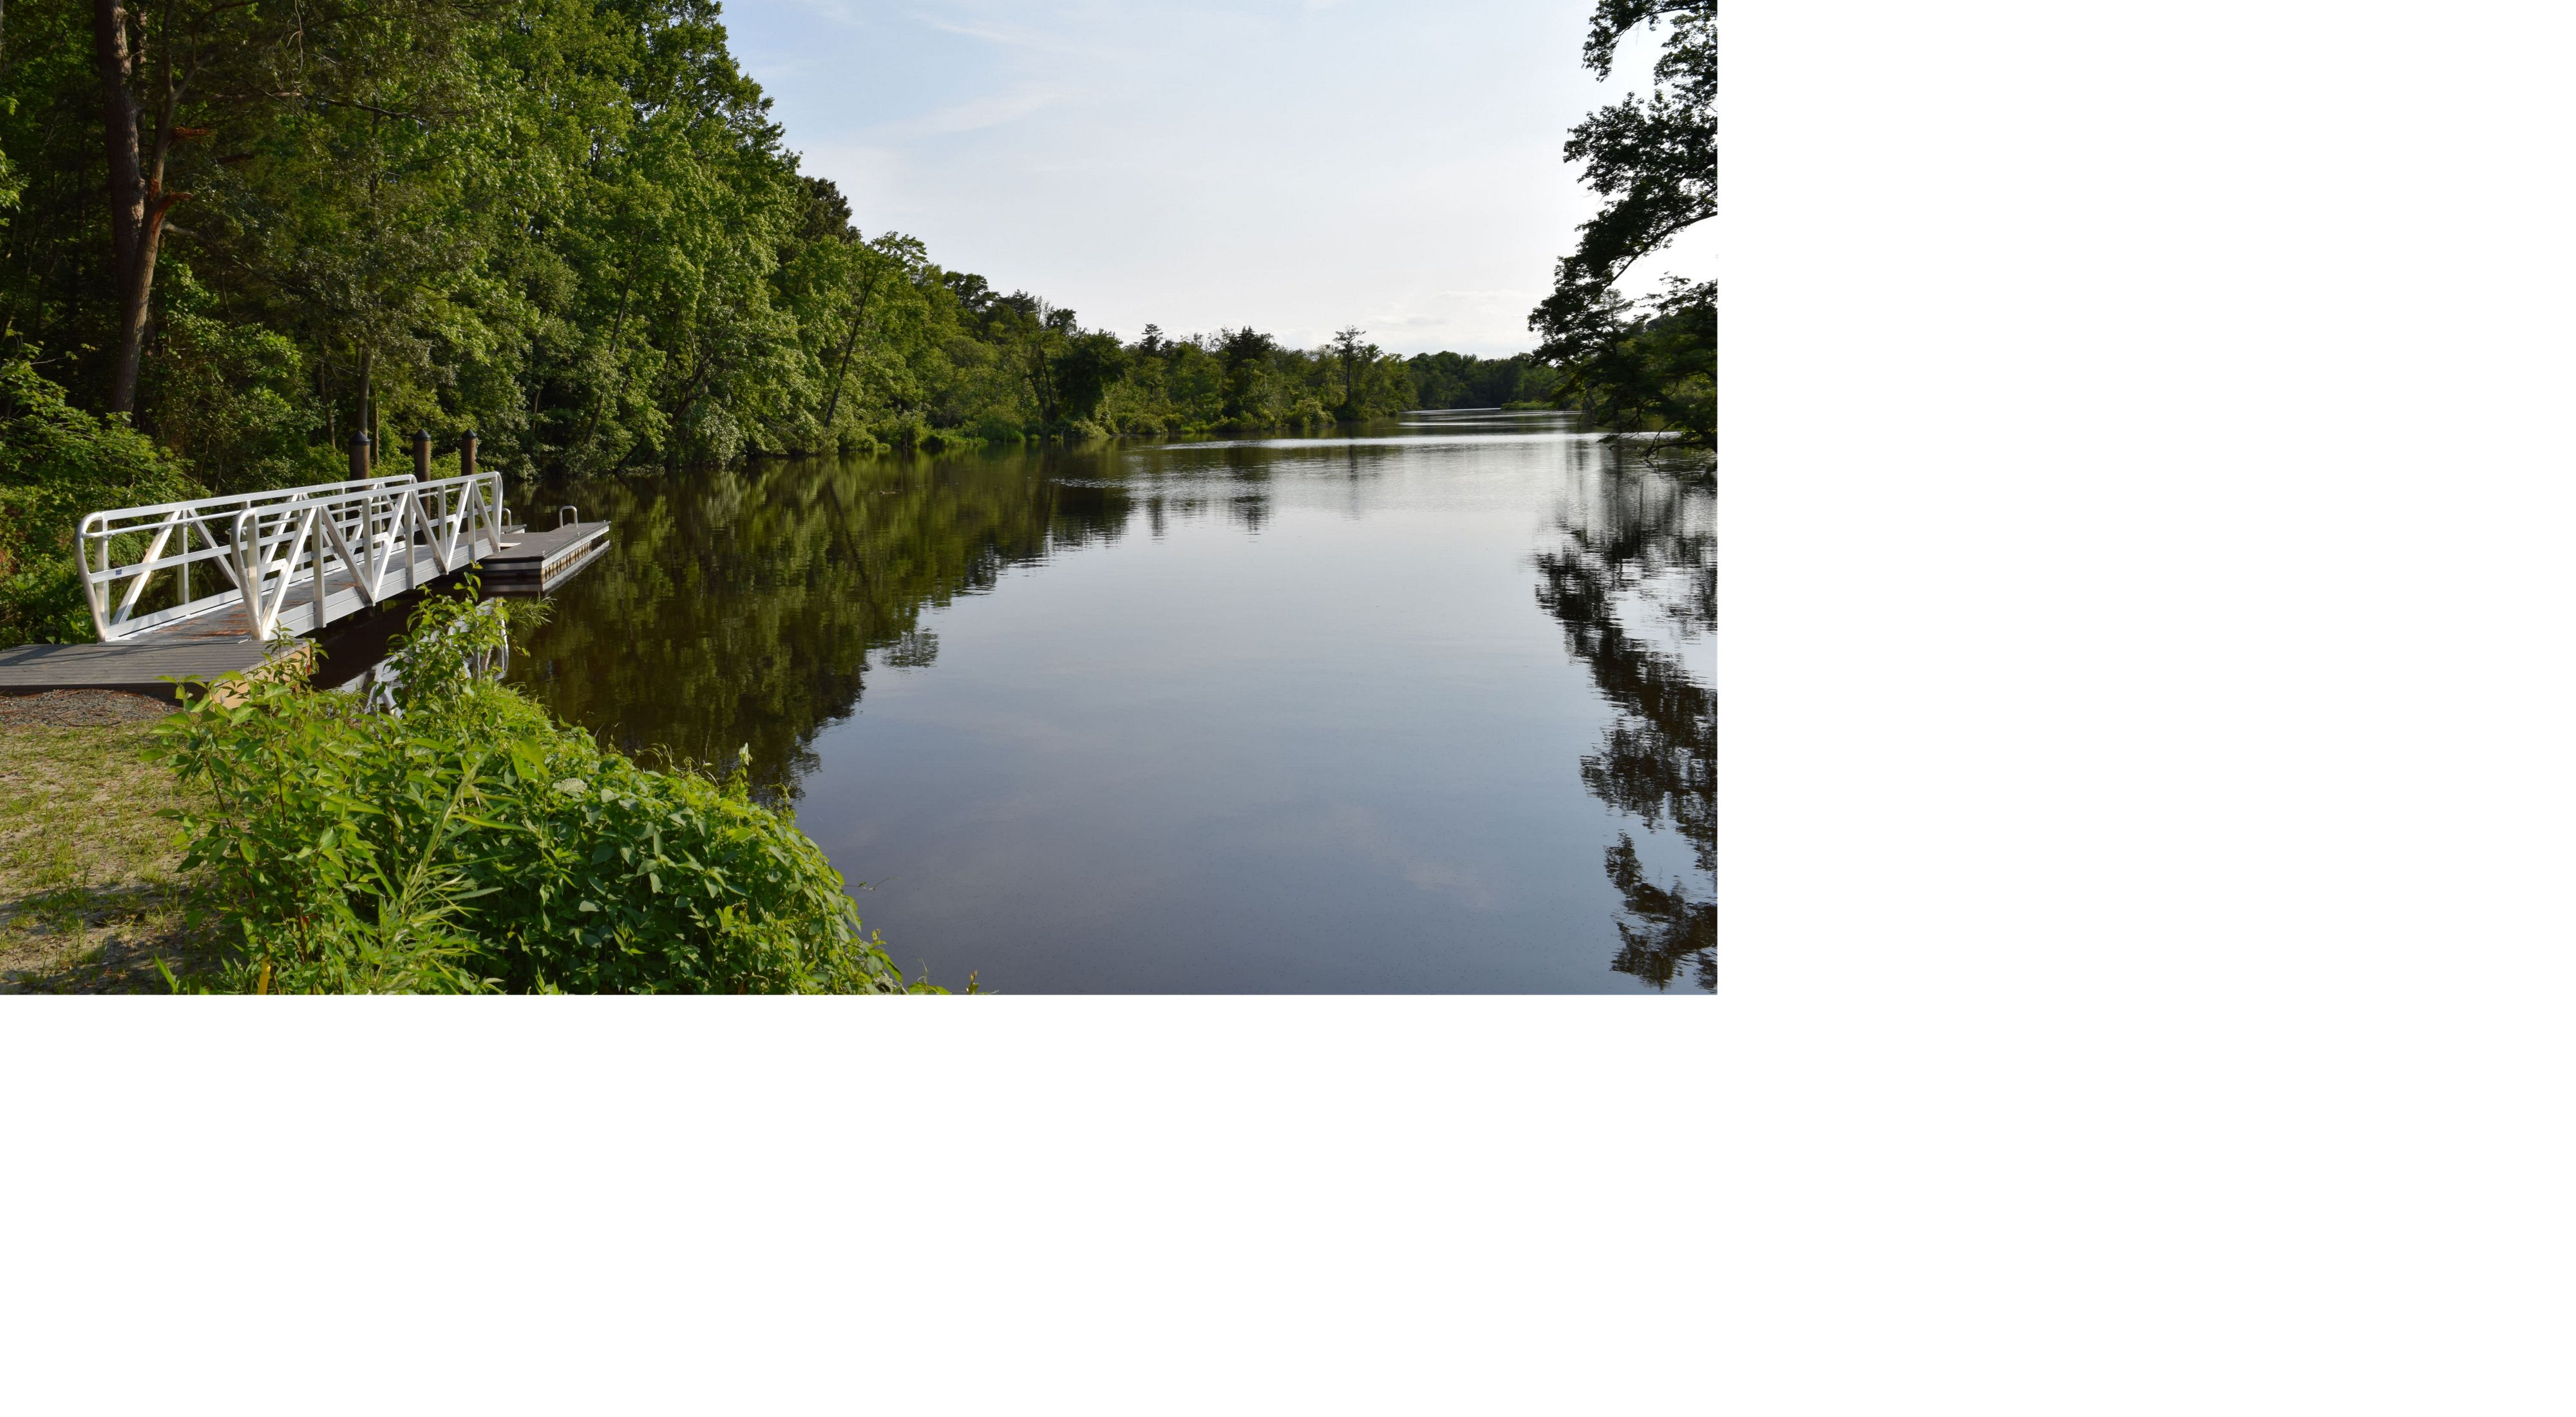 A short dock floats at the edge of the Broadkill River. The still surface of the water reflects the tall leafy green trees that line the river's edge.